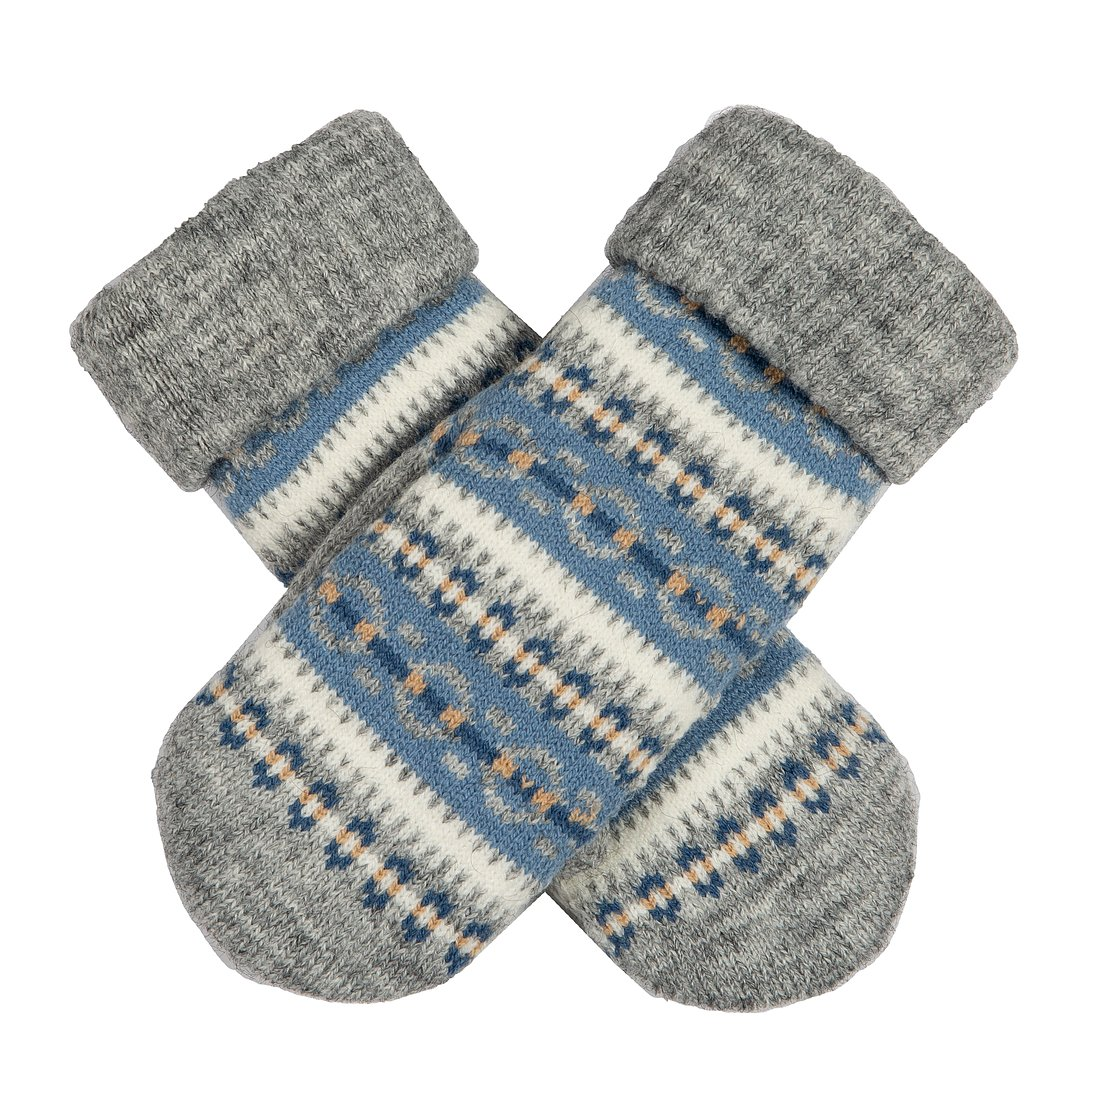 Dents knitted Apre's ski mitten, grey